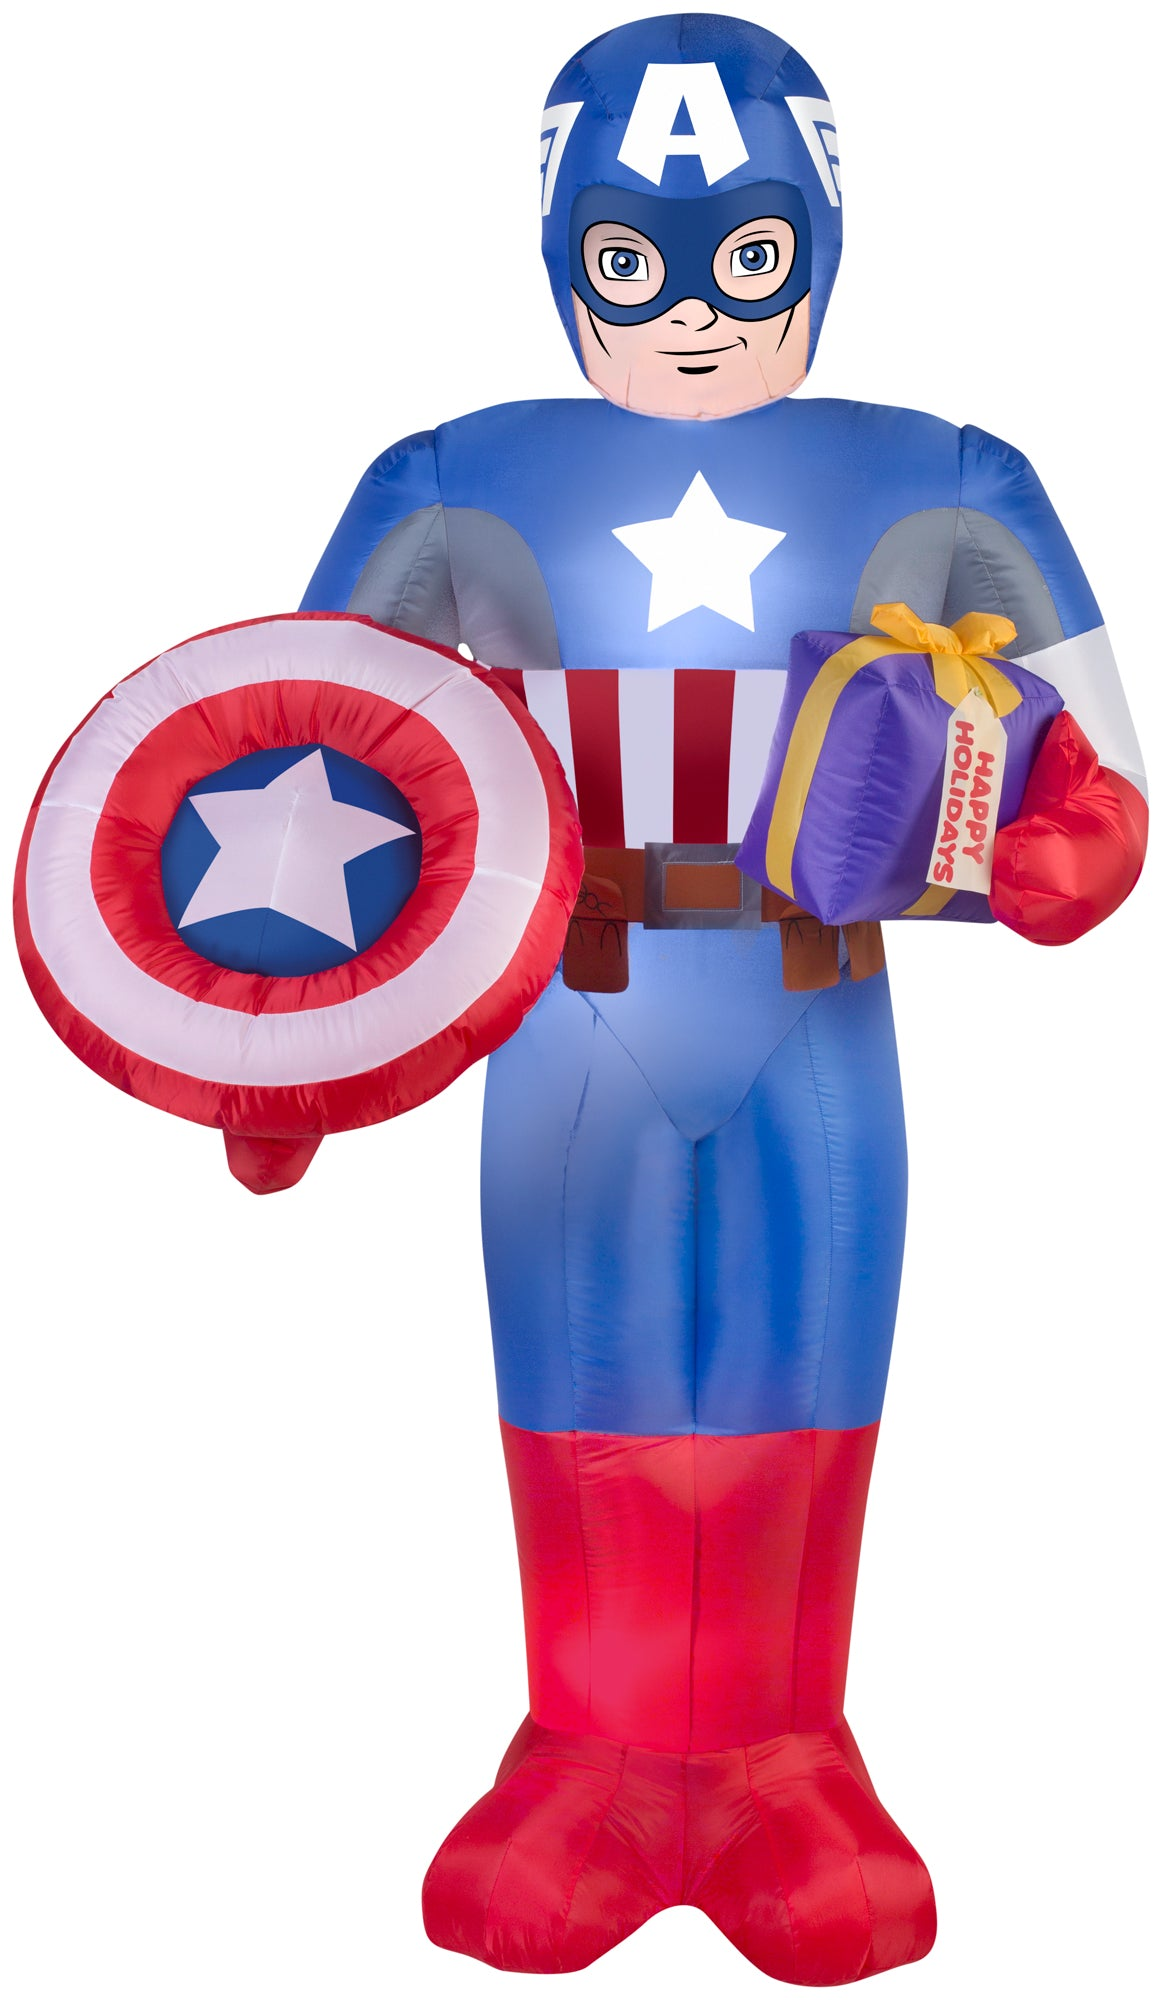 6' Airblown Captain America Marvel Christmas Inflatable